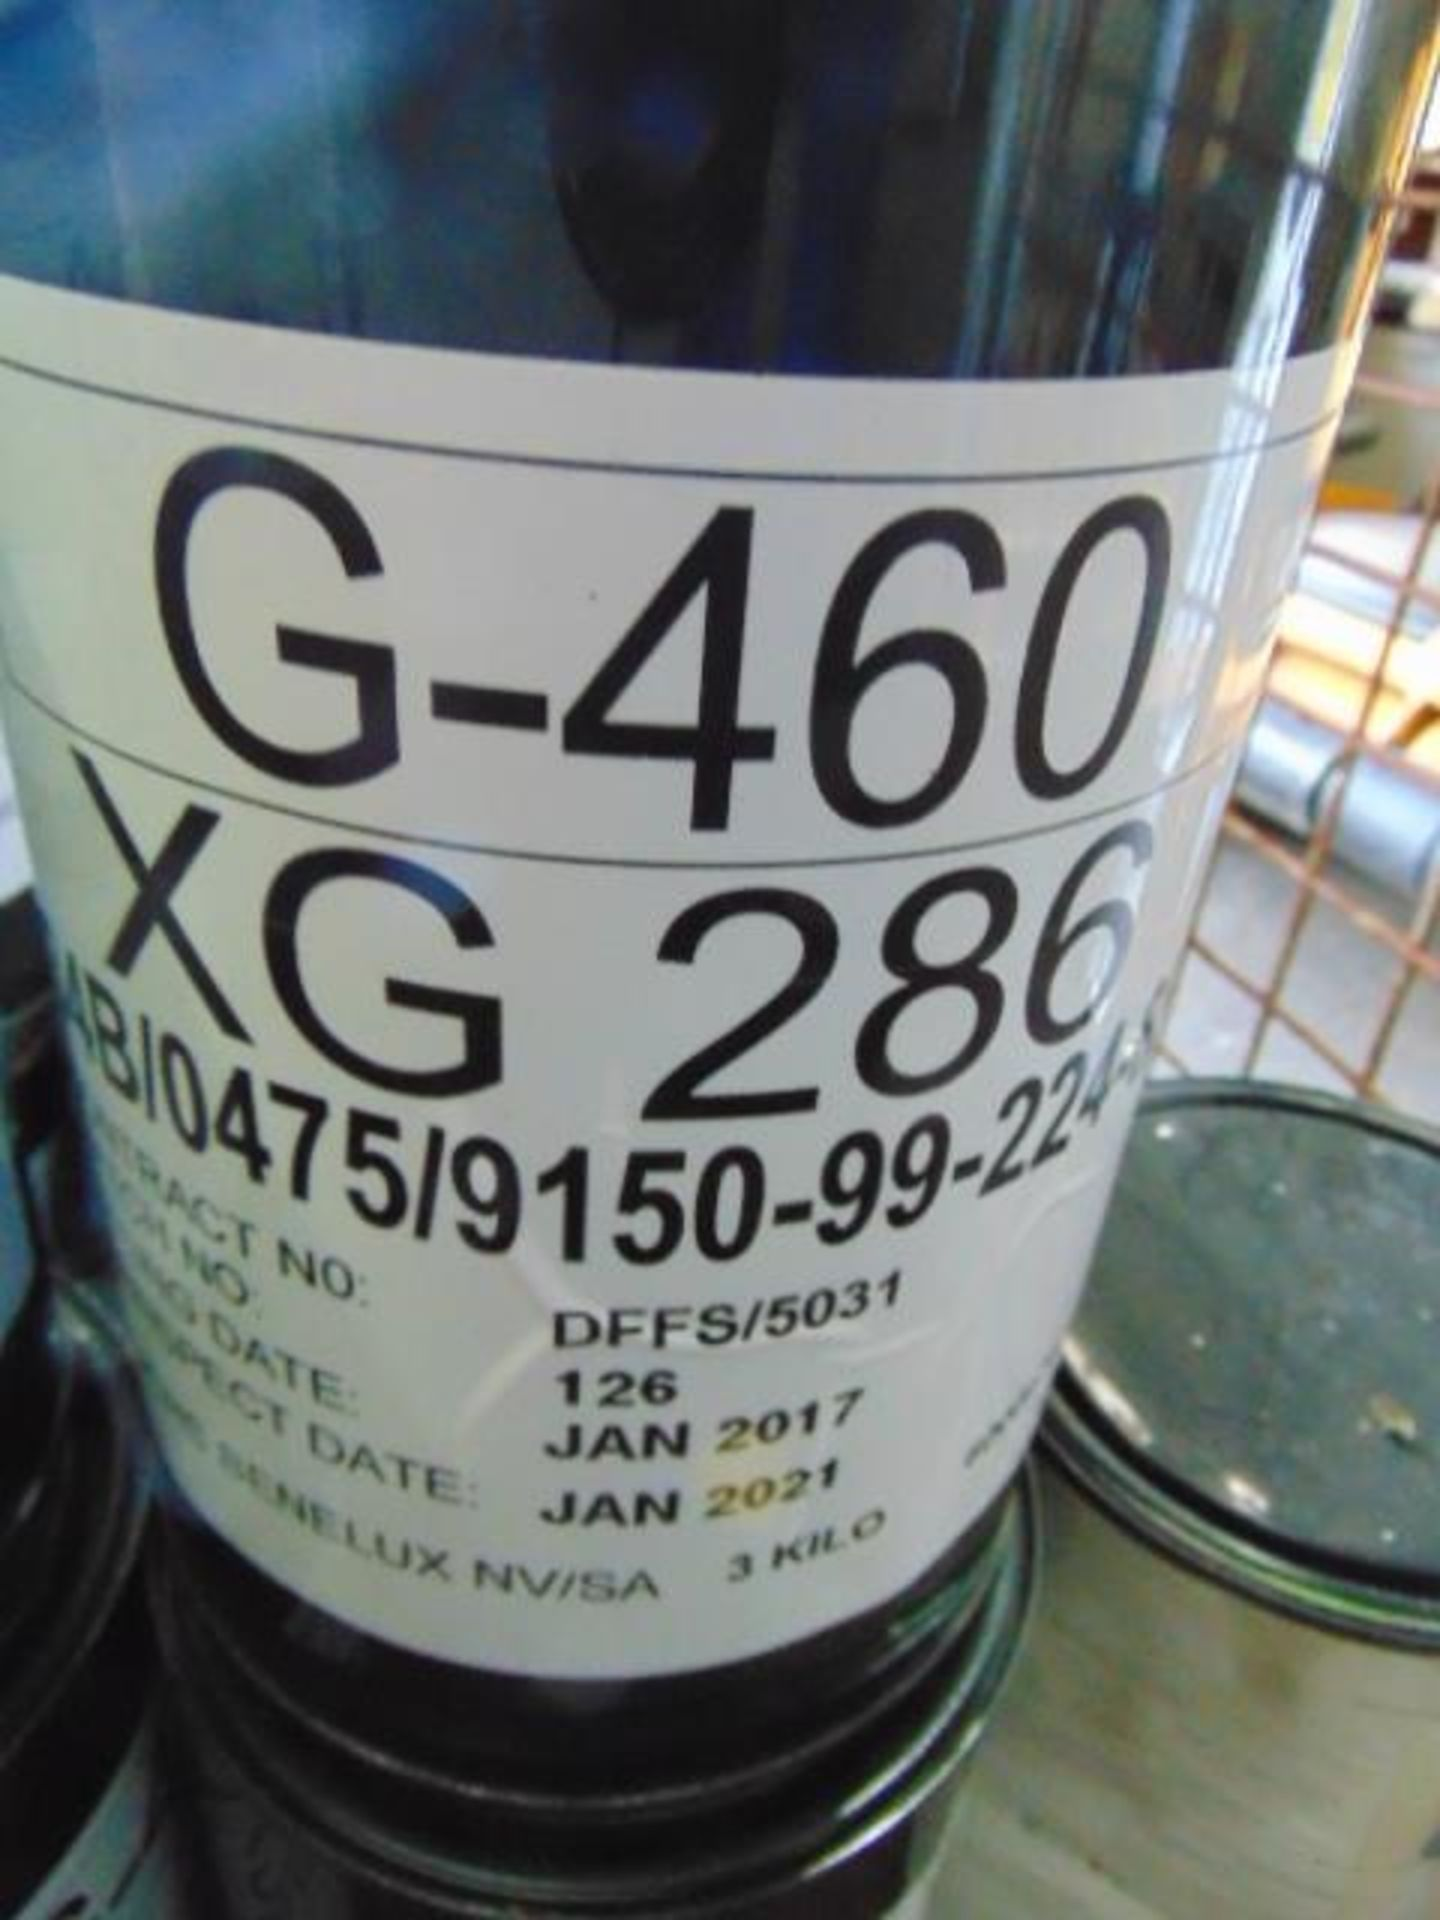 Lot 102 - Qty 16 x 3Kg G460/XG286 Grease direct from reserve stores